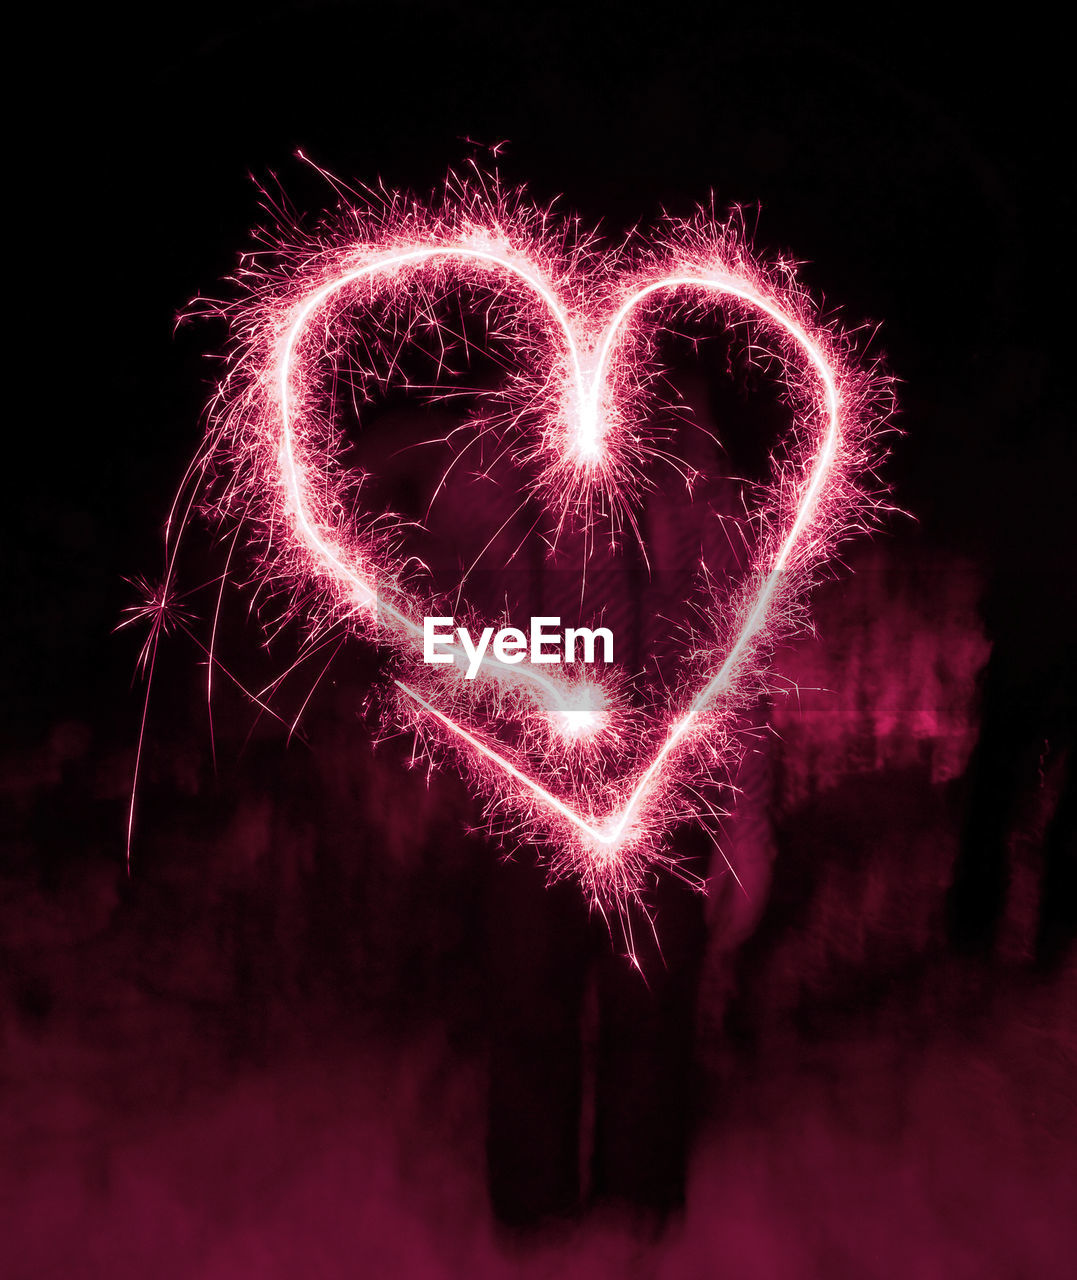 illuminated, long exposure, night, firework, heart shape, emotion, sparkler, celebration, creativity, glowing, positive emotion, love, motion, burning, arts culture and entertainment, event, no people, light, text, light painting, black background, sparks, firework - man made object, firework display